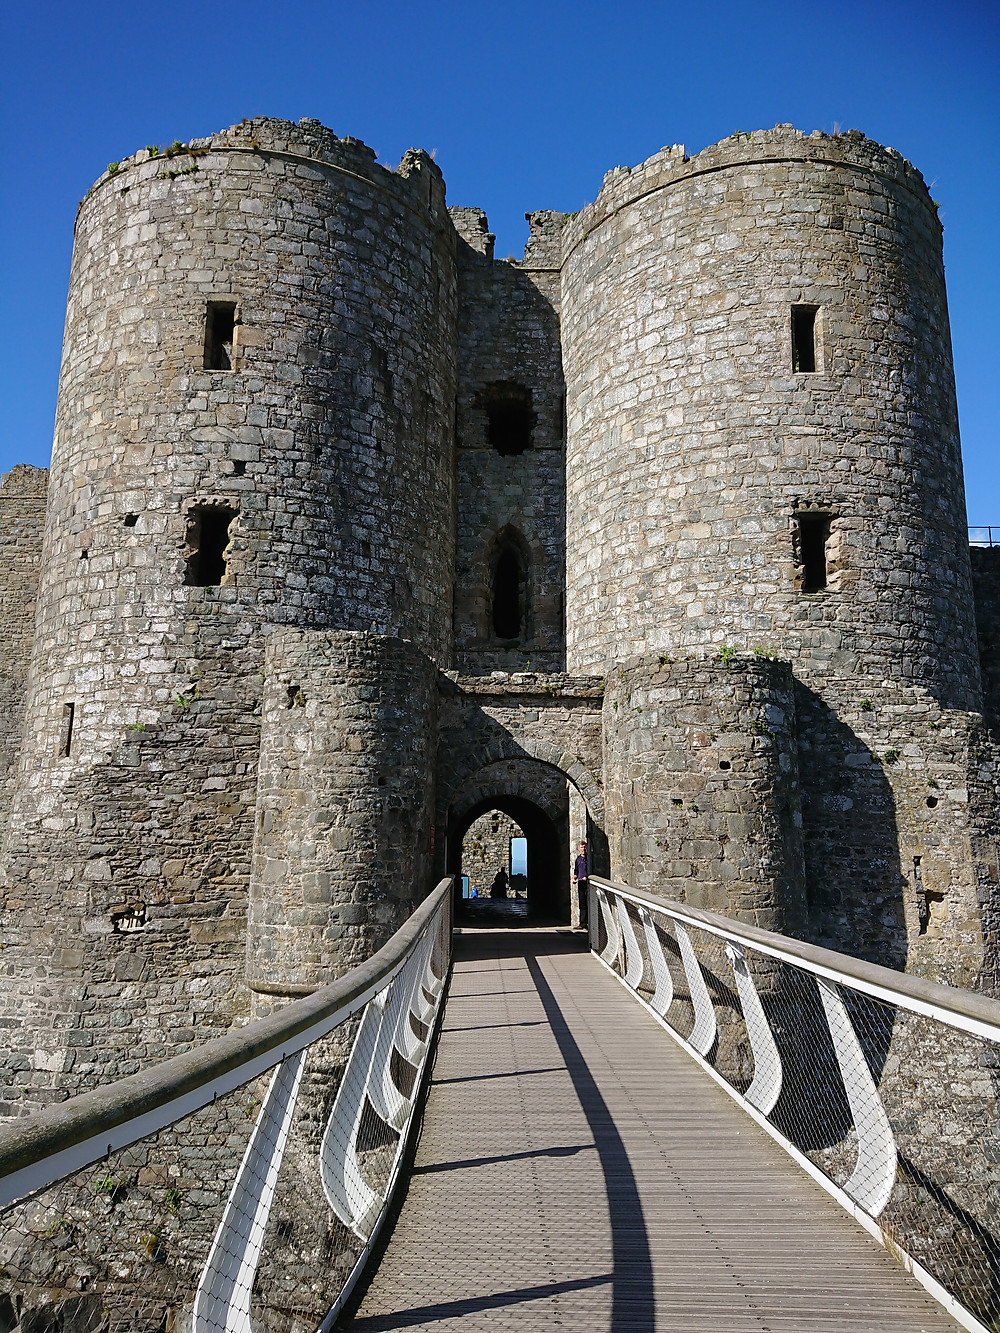 The gatehouse of Harlech Castle in North Wales. Medieval fortress